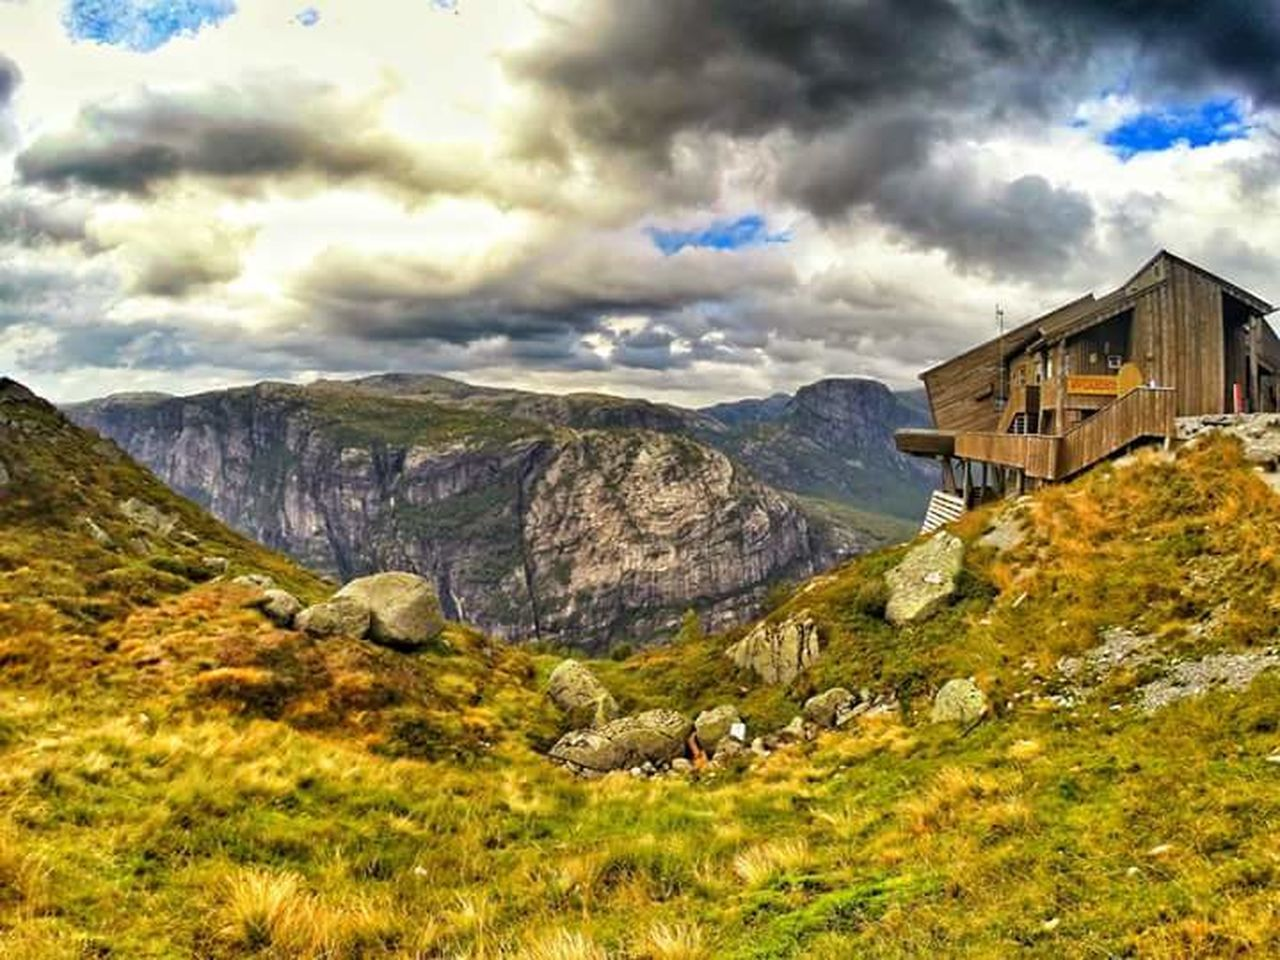 Norway Norge Lysefjord Ryfylke Mountain Outdoors Landscape Scenics Beauty In Nature Day Goprophotography Aroundtheworld Follow4follow Travel Photography Worldplaces Goprotravel Traveladdict Goproworld Aroundtheworld Fjordsofnorway